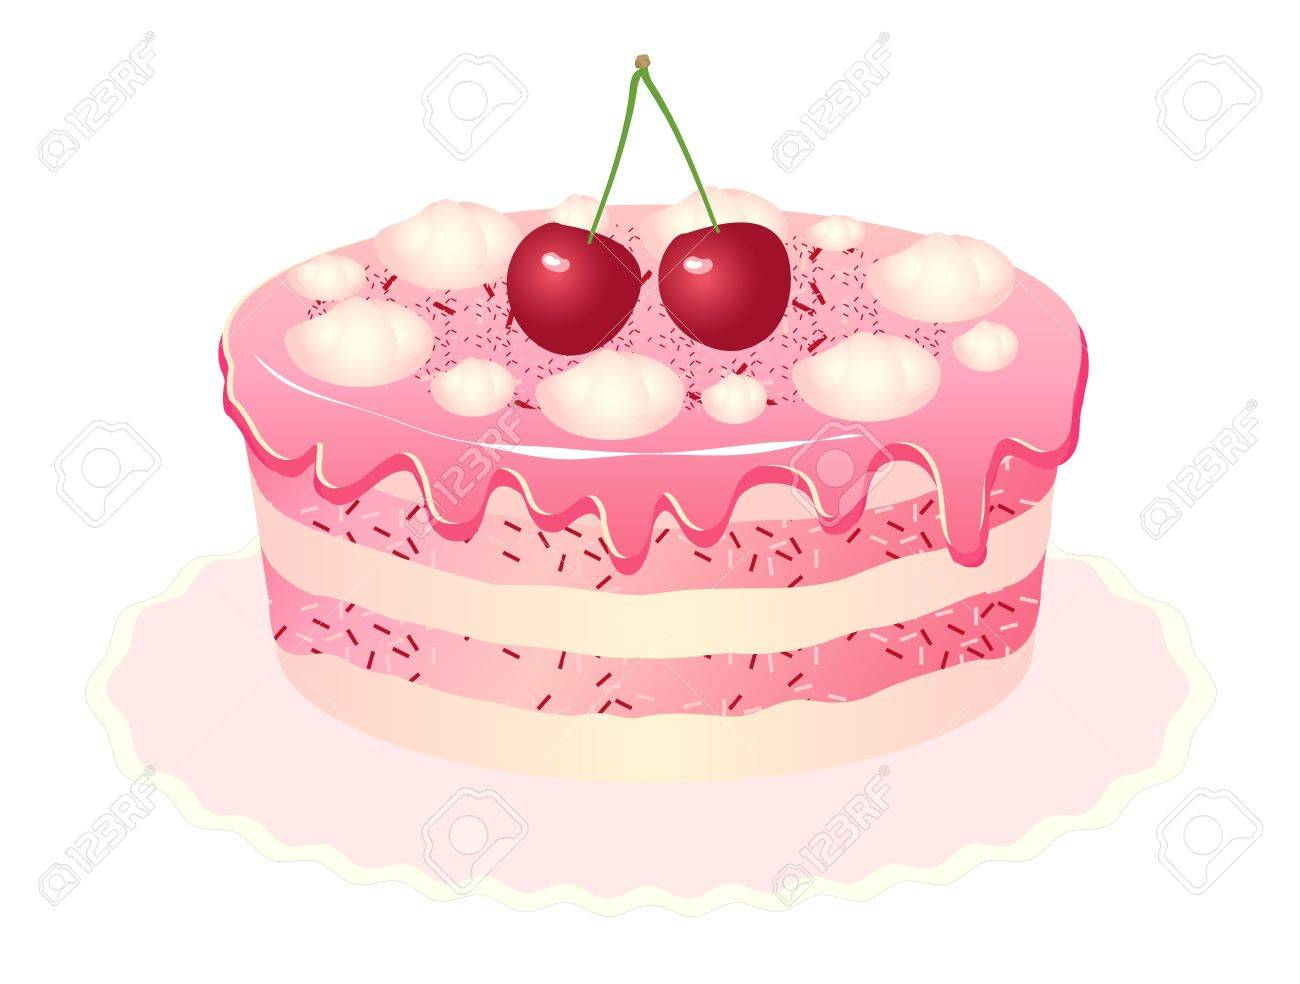 Pink Delicious Cake With Cream Cherries And Ice Cream Royalty